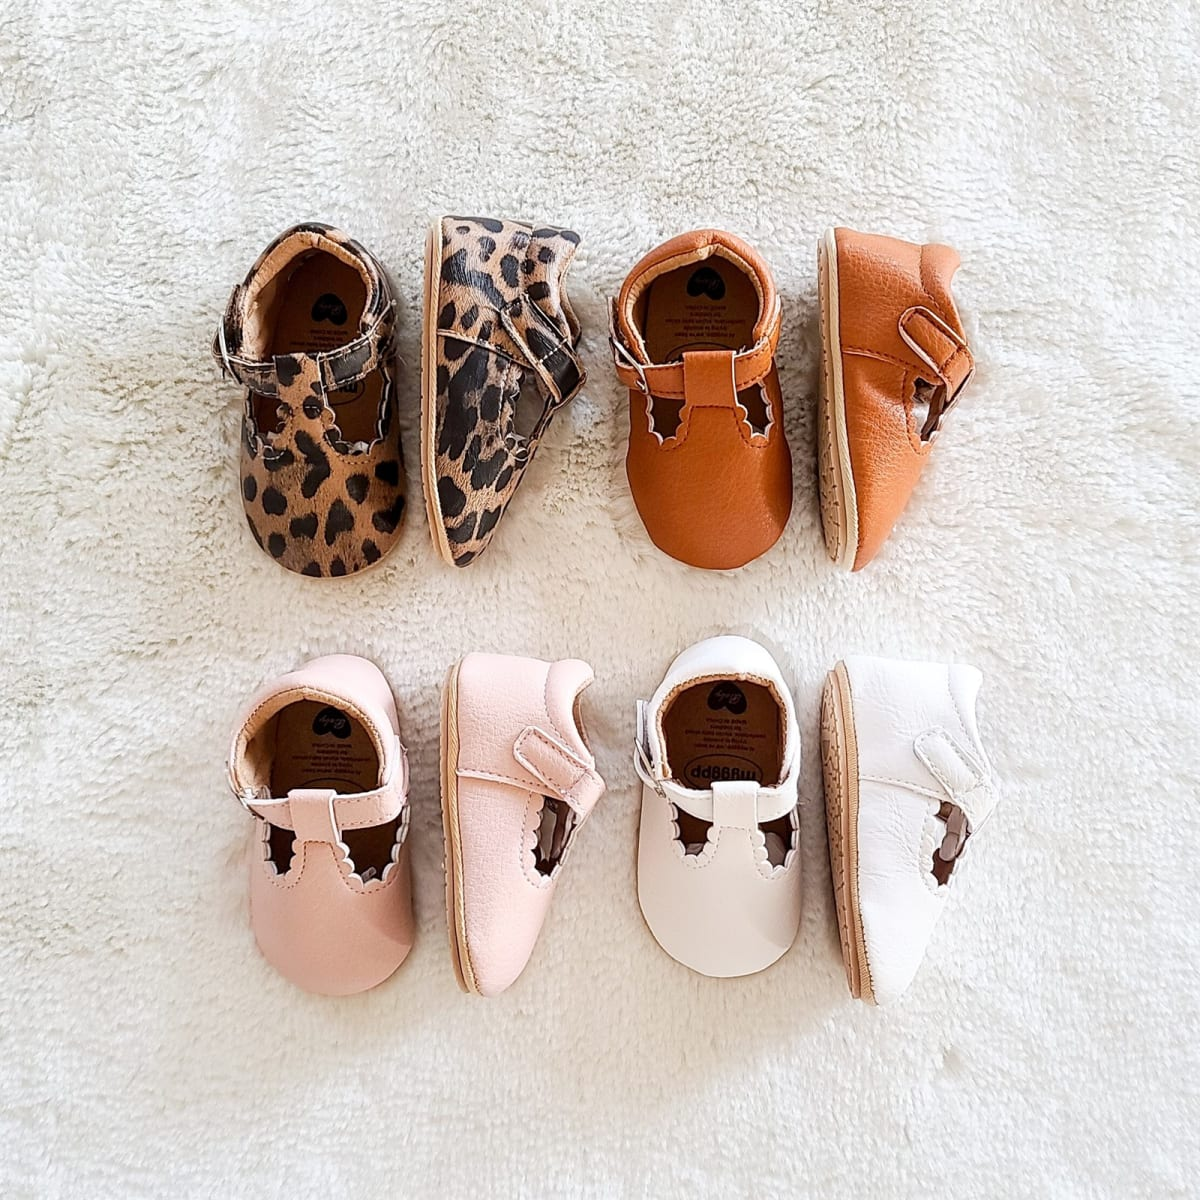 Baby Girl Leather Hard Sole Shoes! .99 (REG .99) + Free Shipping at Jane!